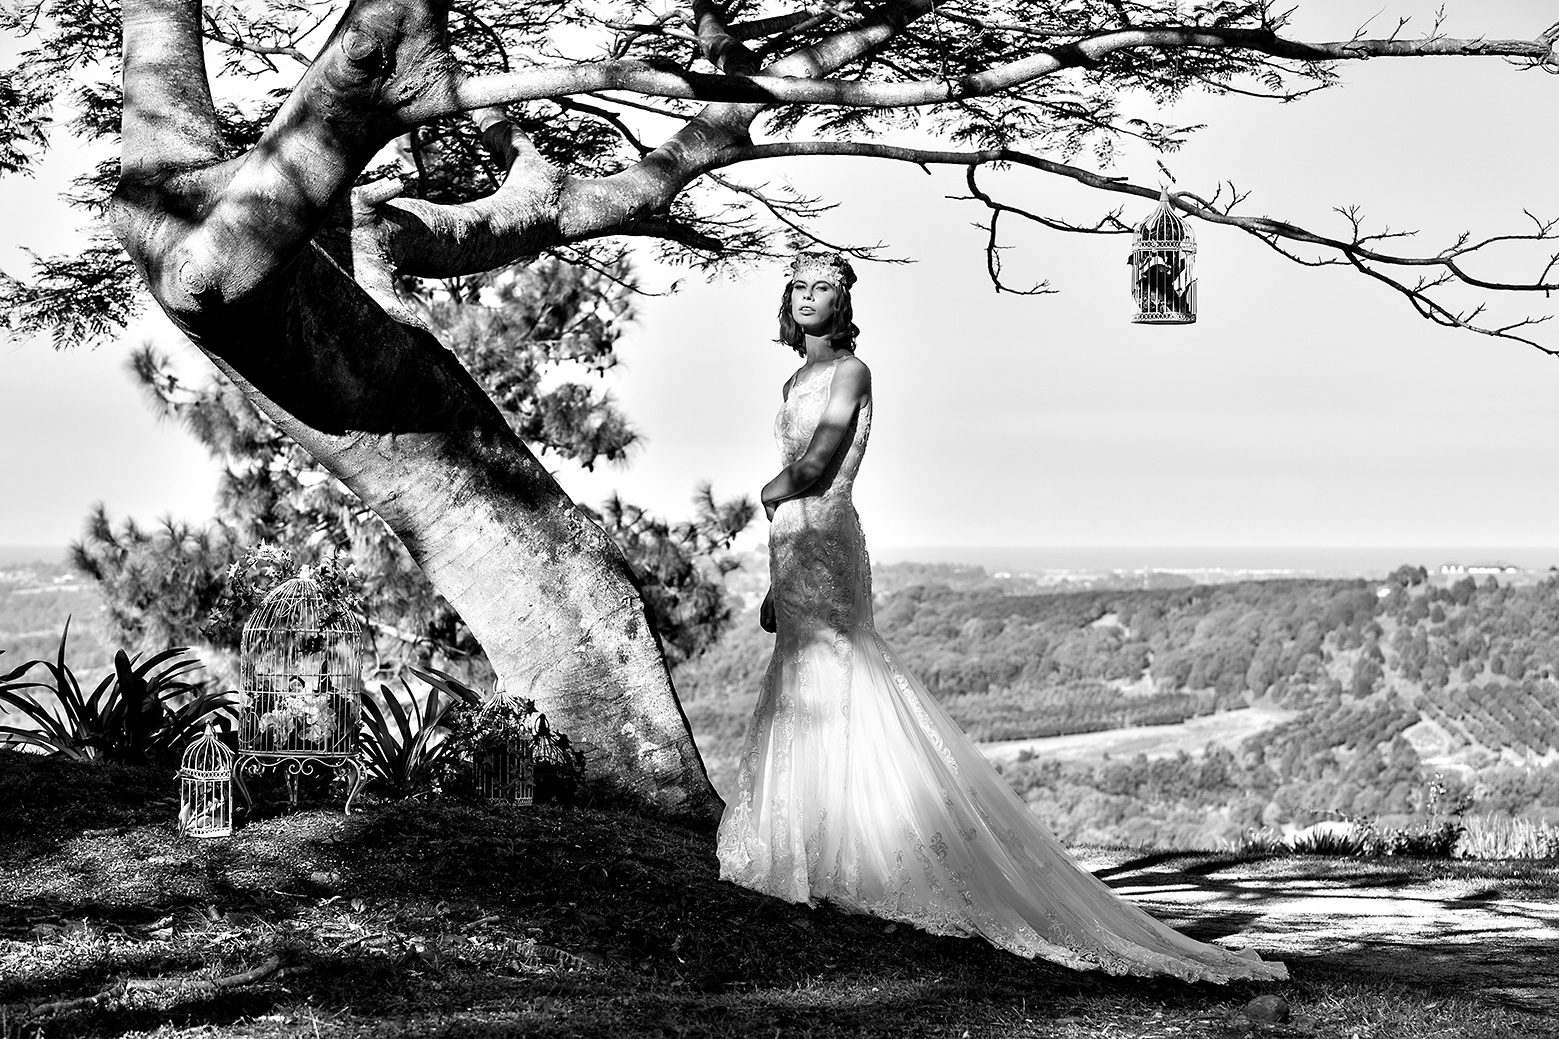 Black & white photo of a bride standing under a large flame tree in her wedding gown designed by Gold Coast Bridal Lounge